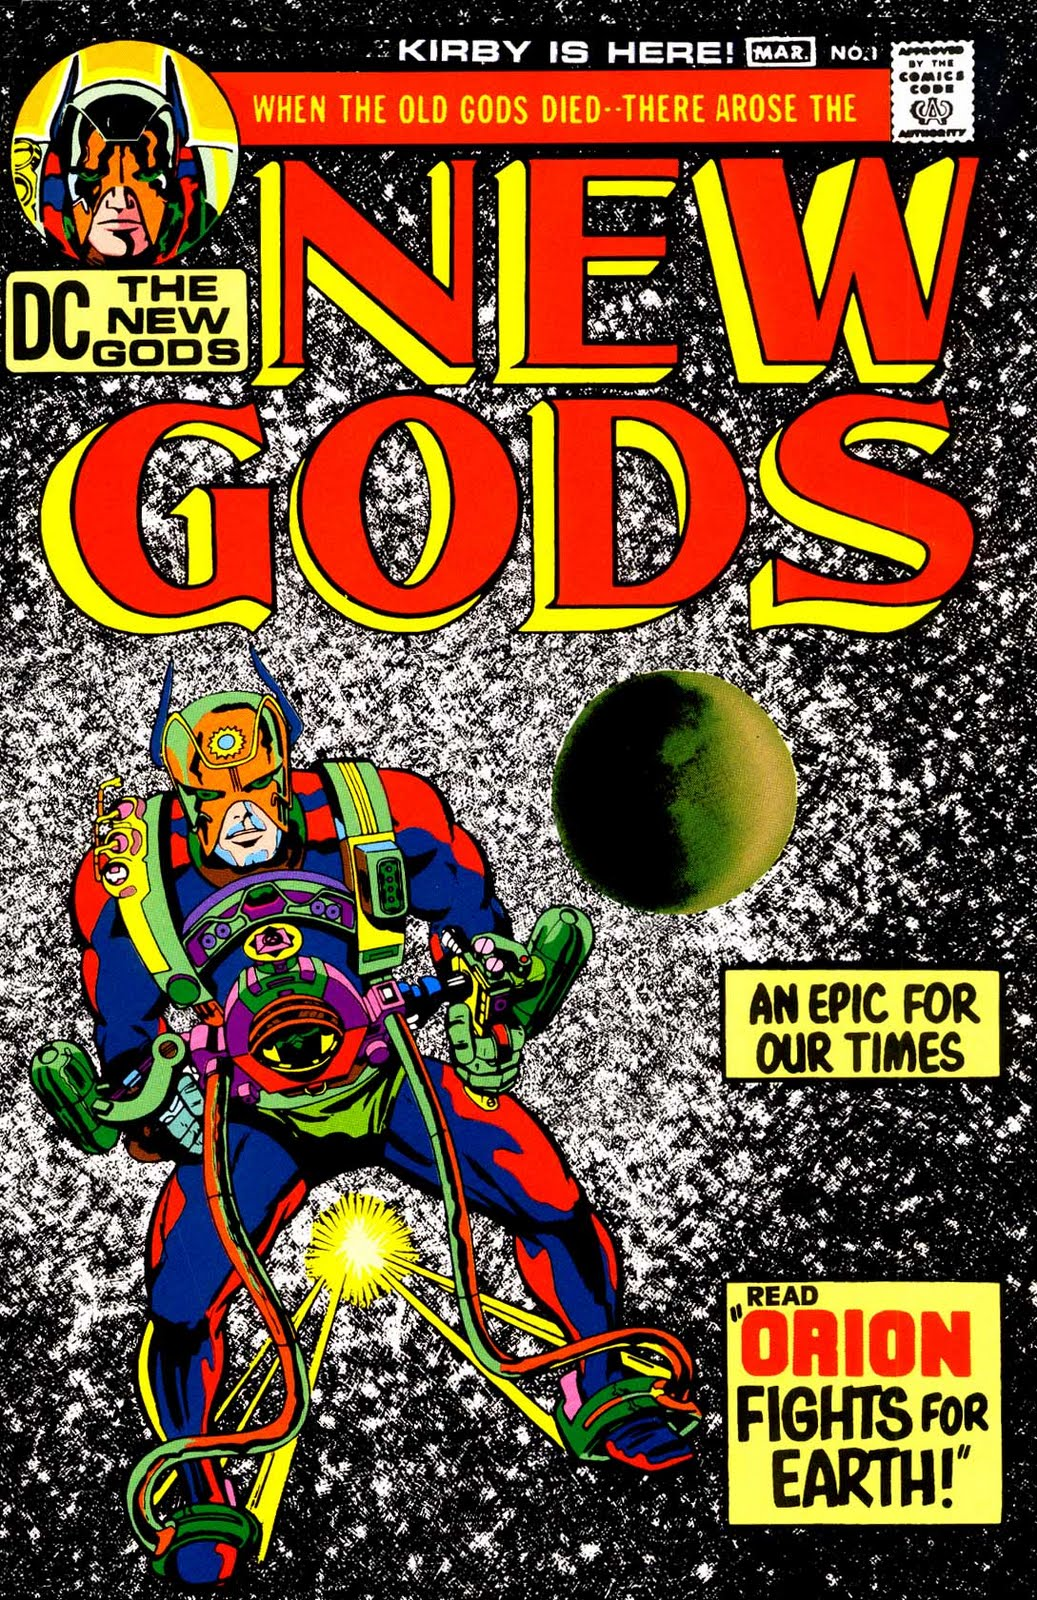 What was the Best Decade Overall for Comics in the Last Century? NewGods1-00